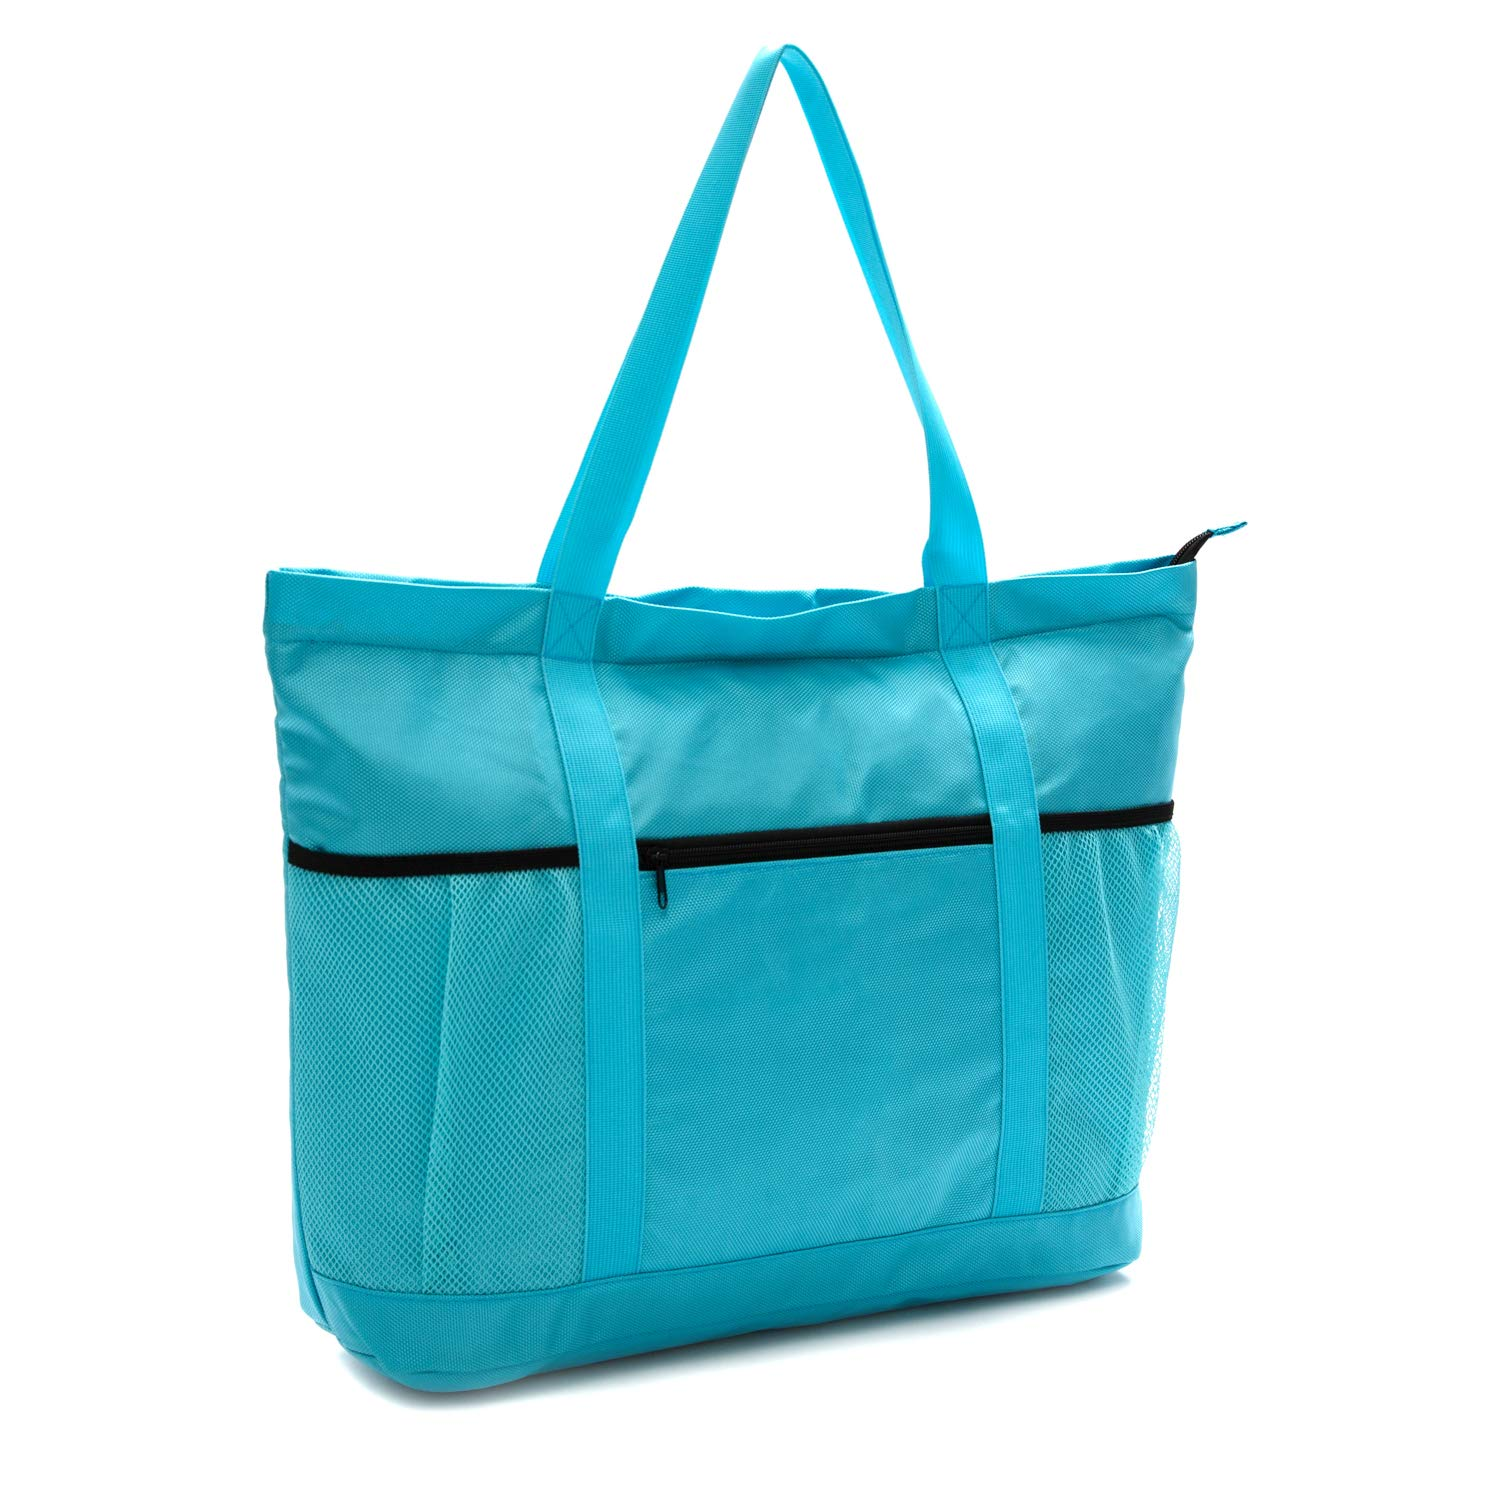 Large Foldable Beach Bag With Zipper - XL Foldable Tote Bag For Travel And Shopping - Large Tote Bag With Many Pockets (Turquoise)